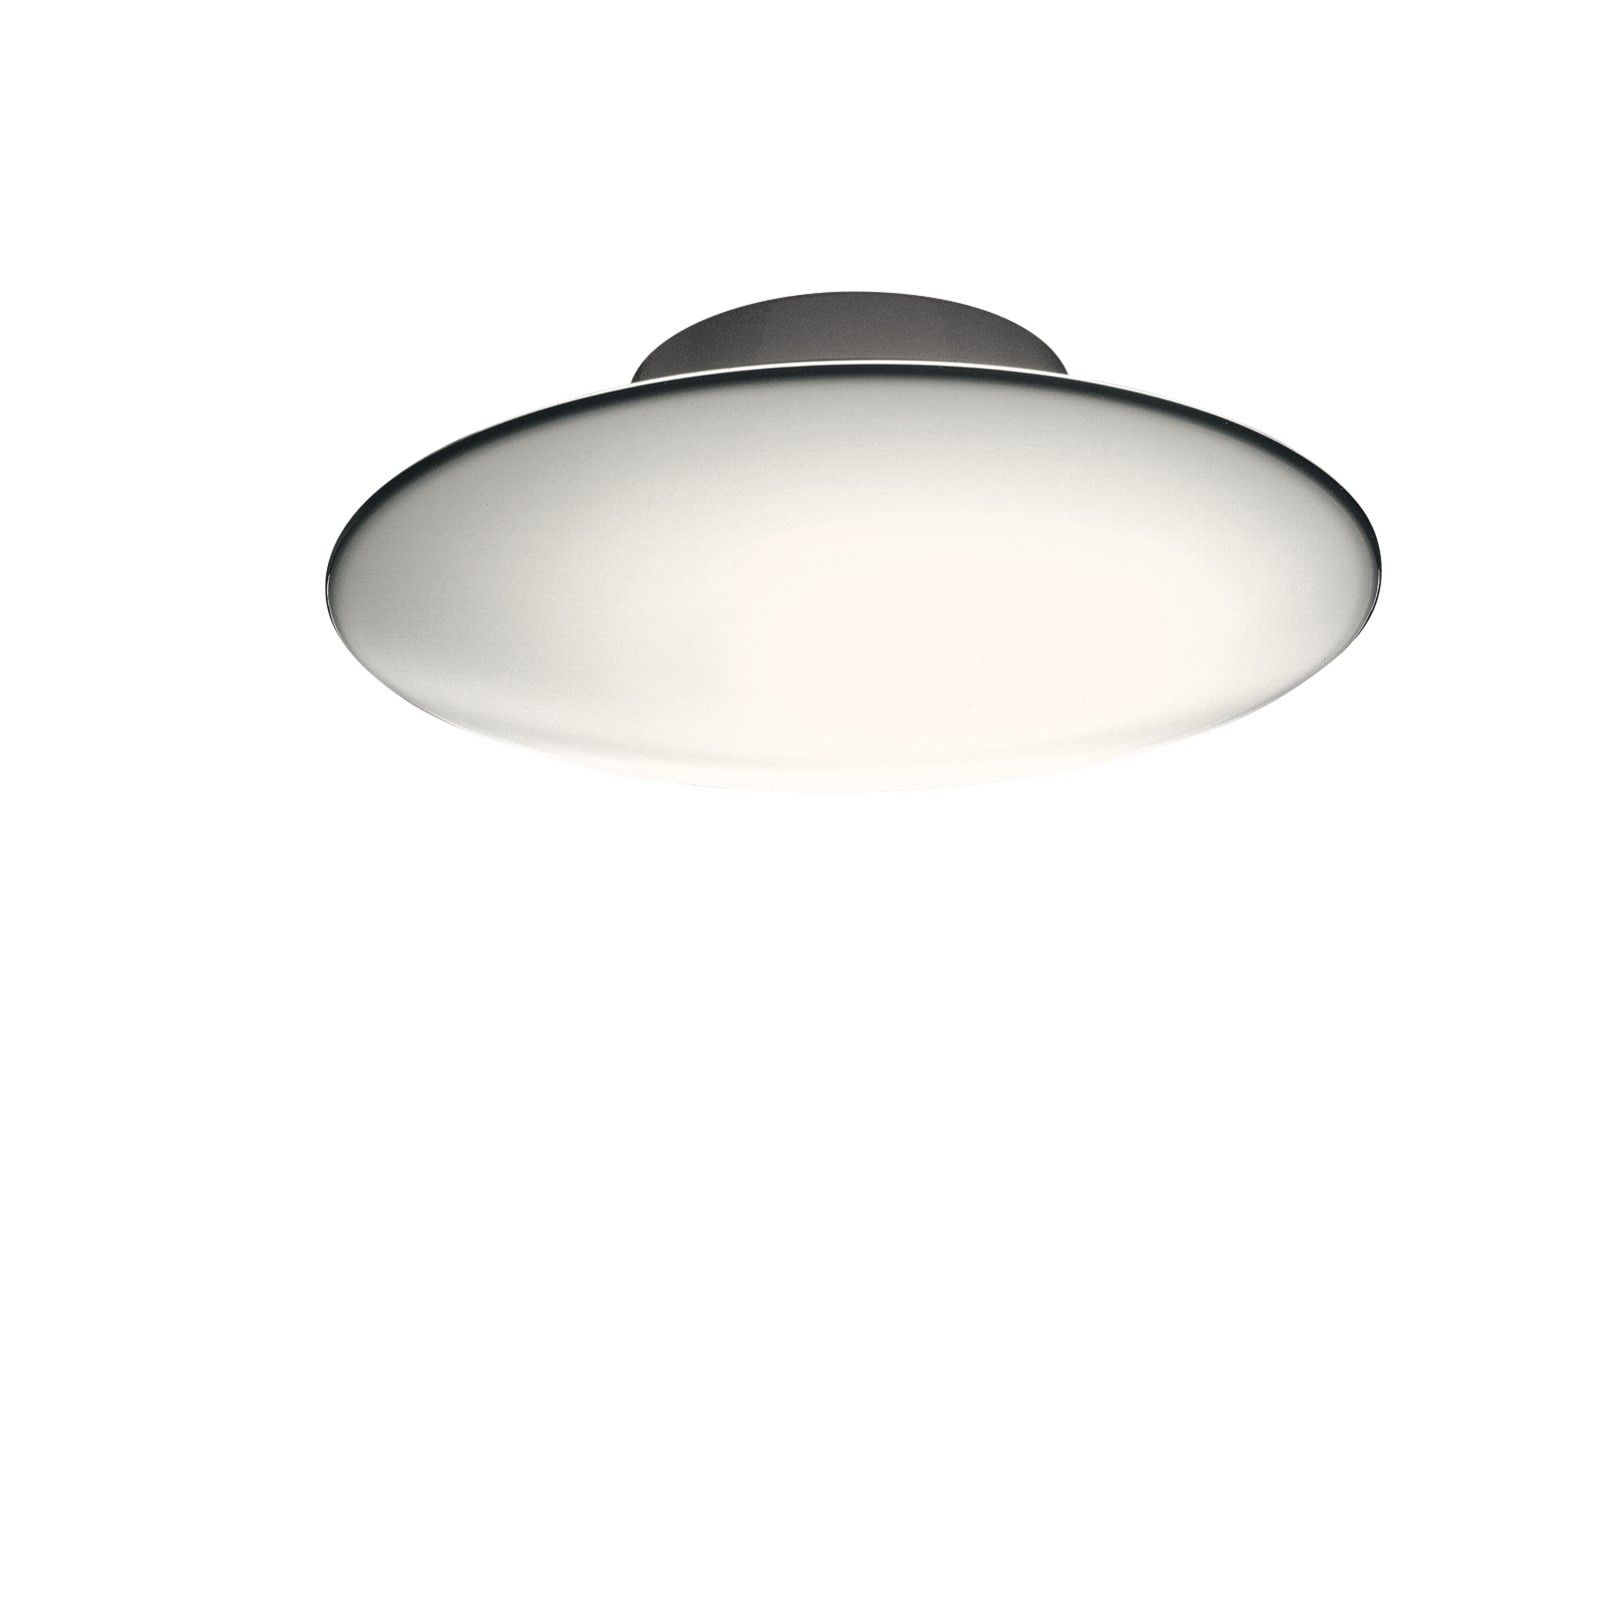 AJ Eklipta 0 22 Ceiling Light G9